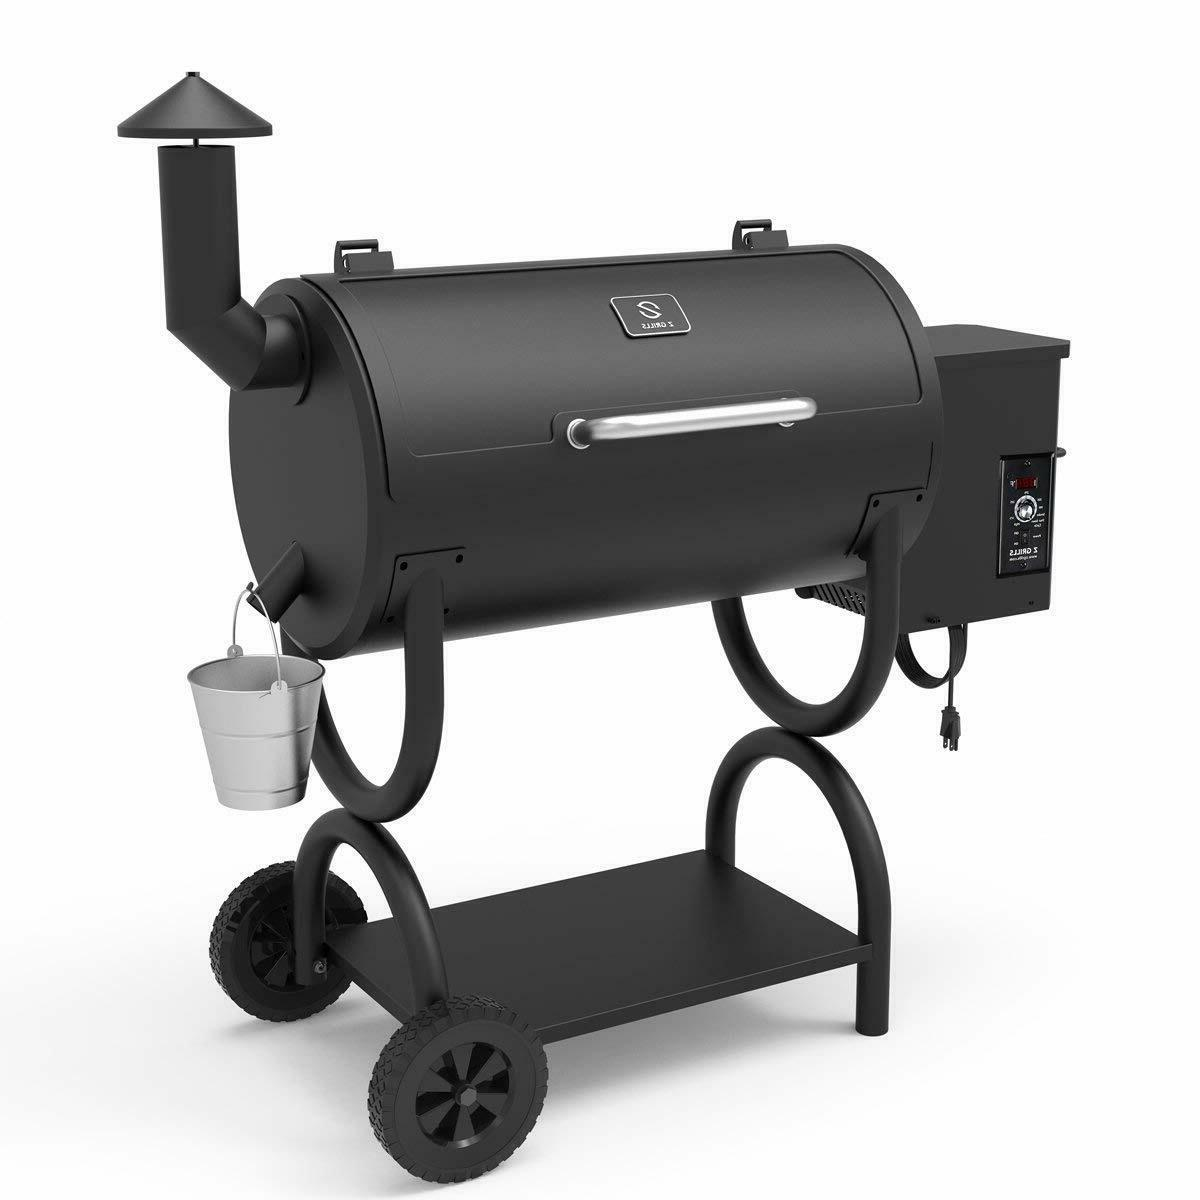 Z Pellet Grill Digital Controls